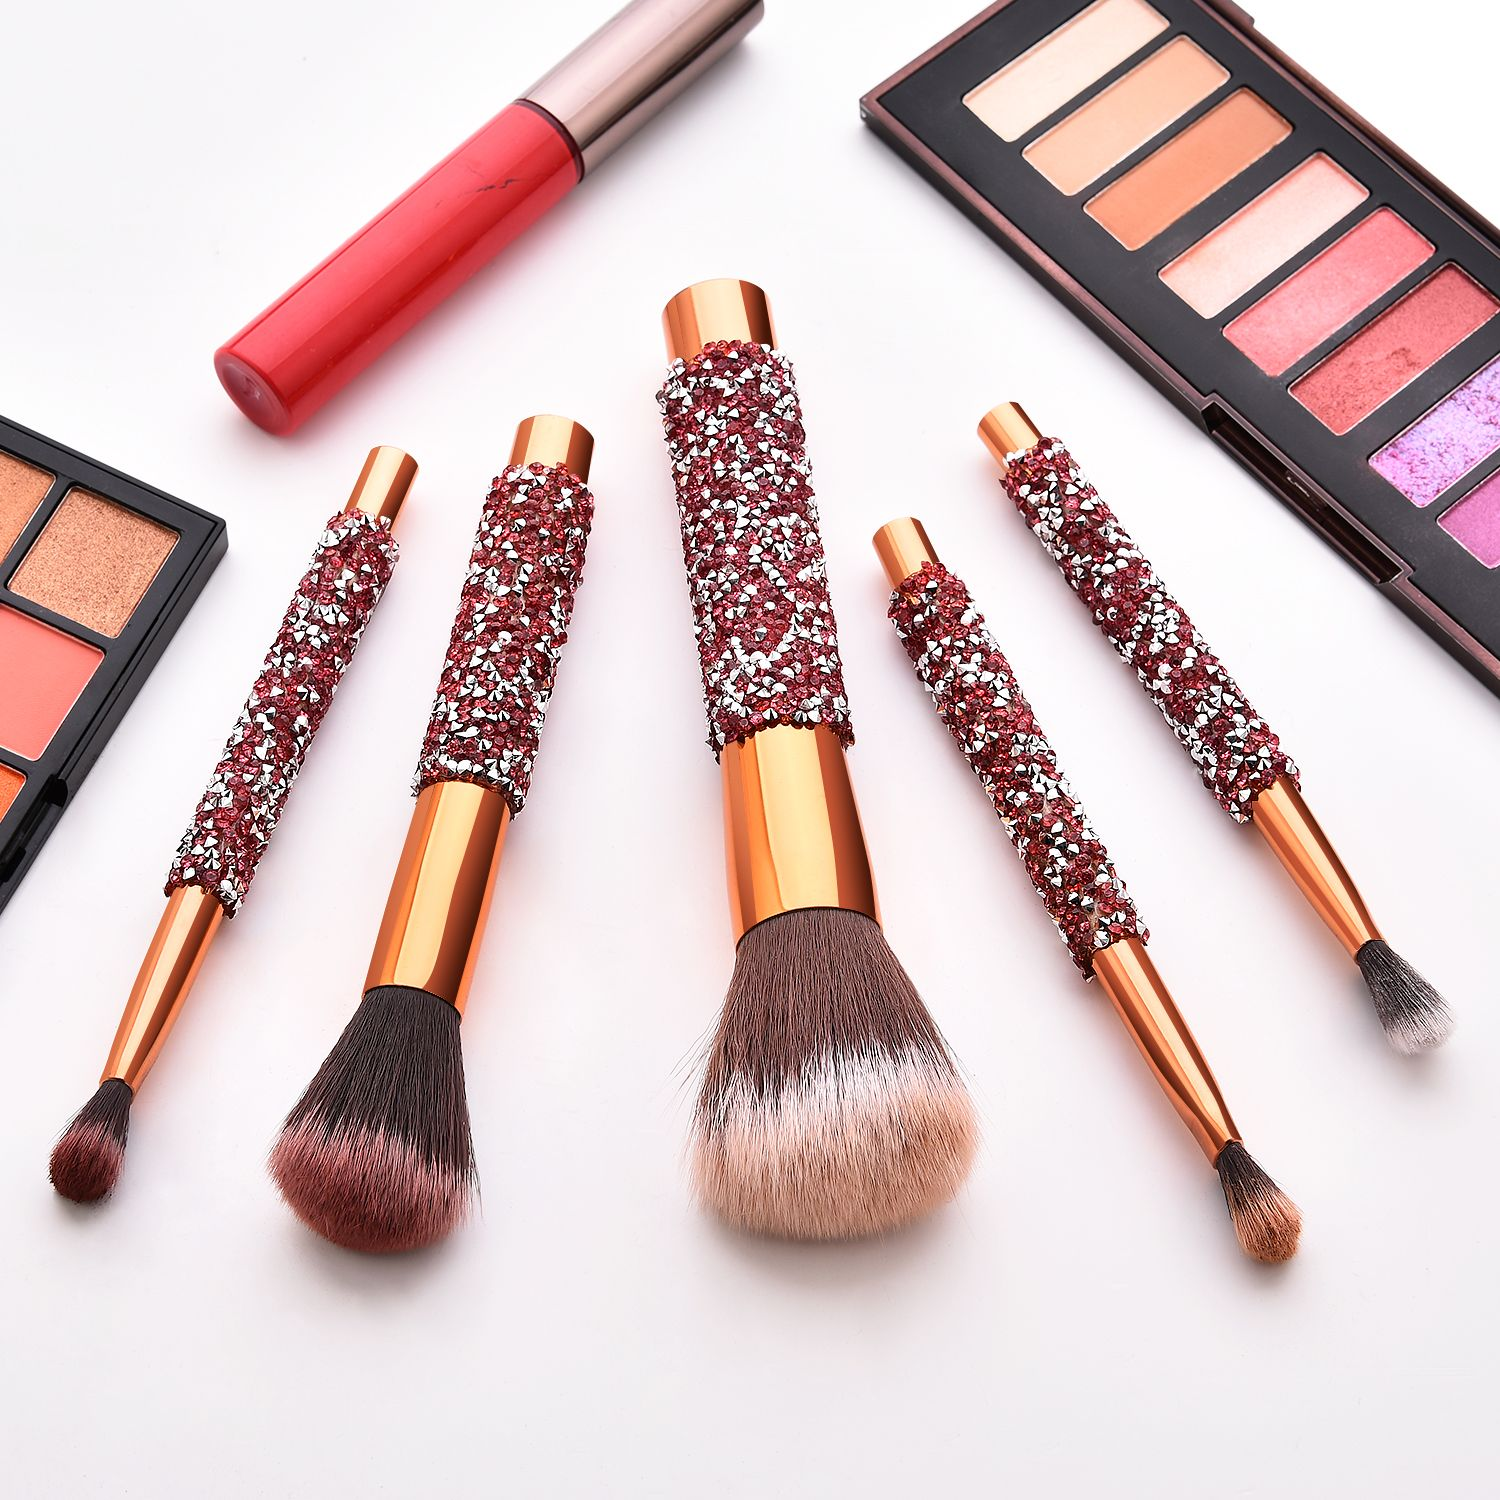 Blinged makeup brushes set available wholesale Small